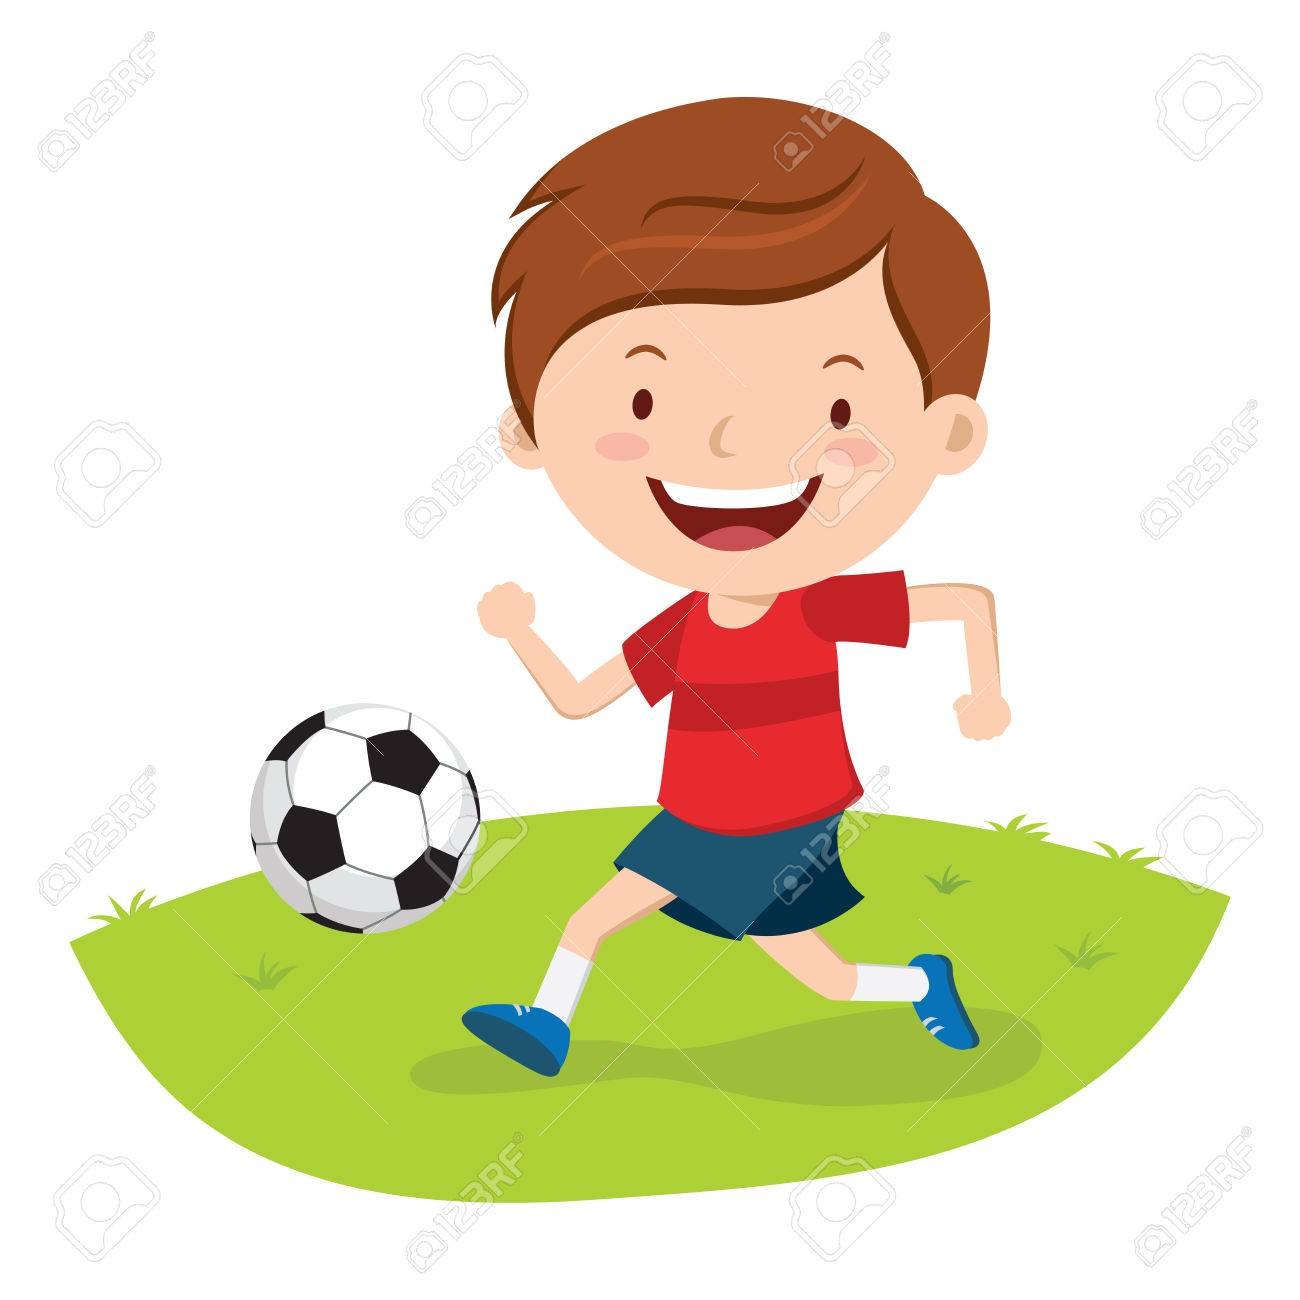 Little boy playing soccer. Boy kicking a soccer ball..